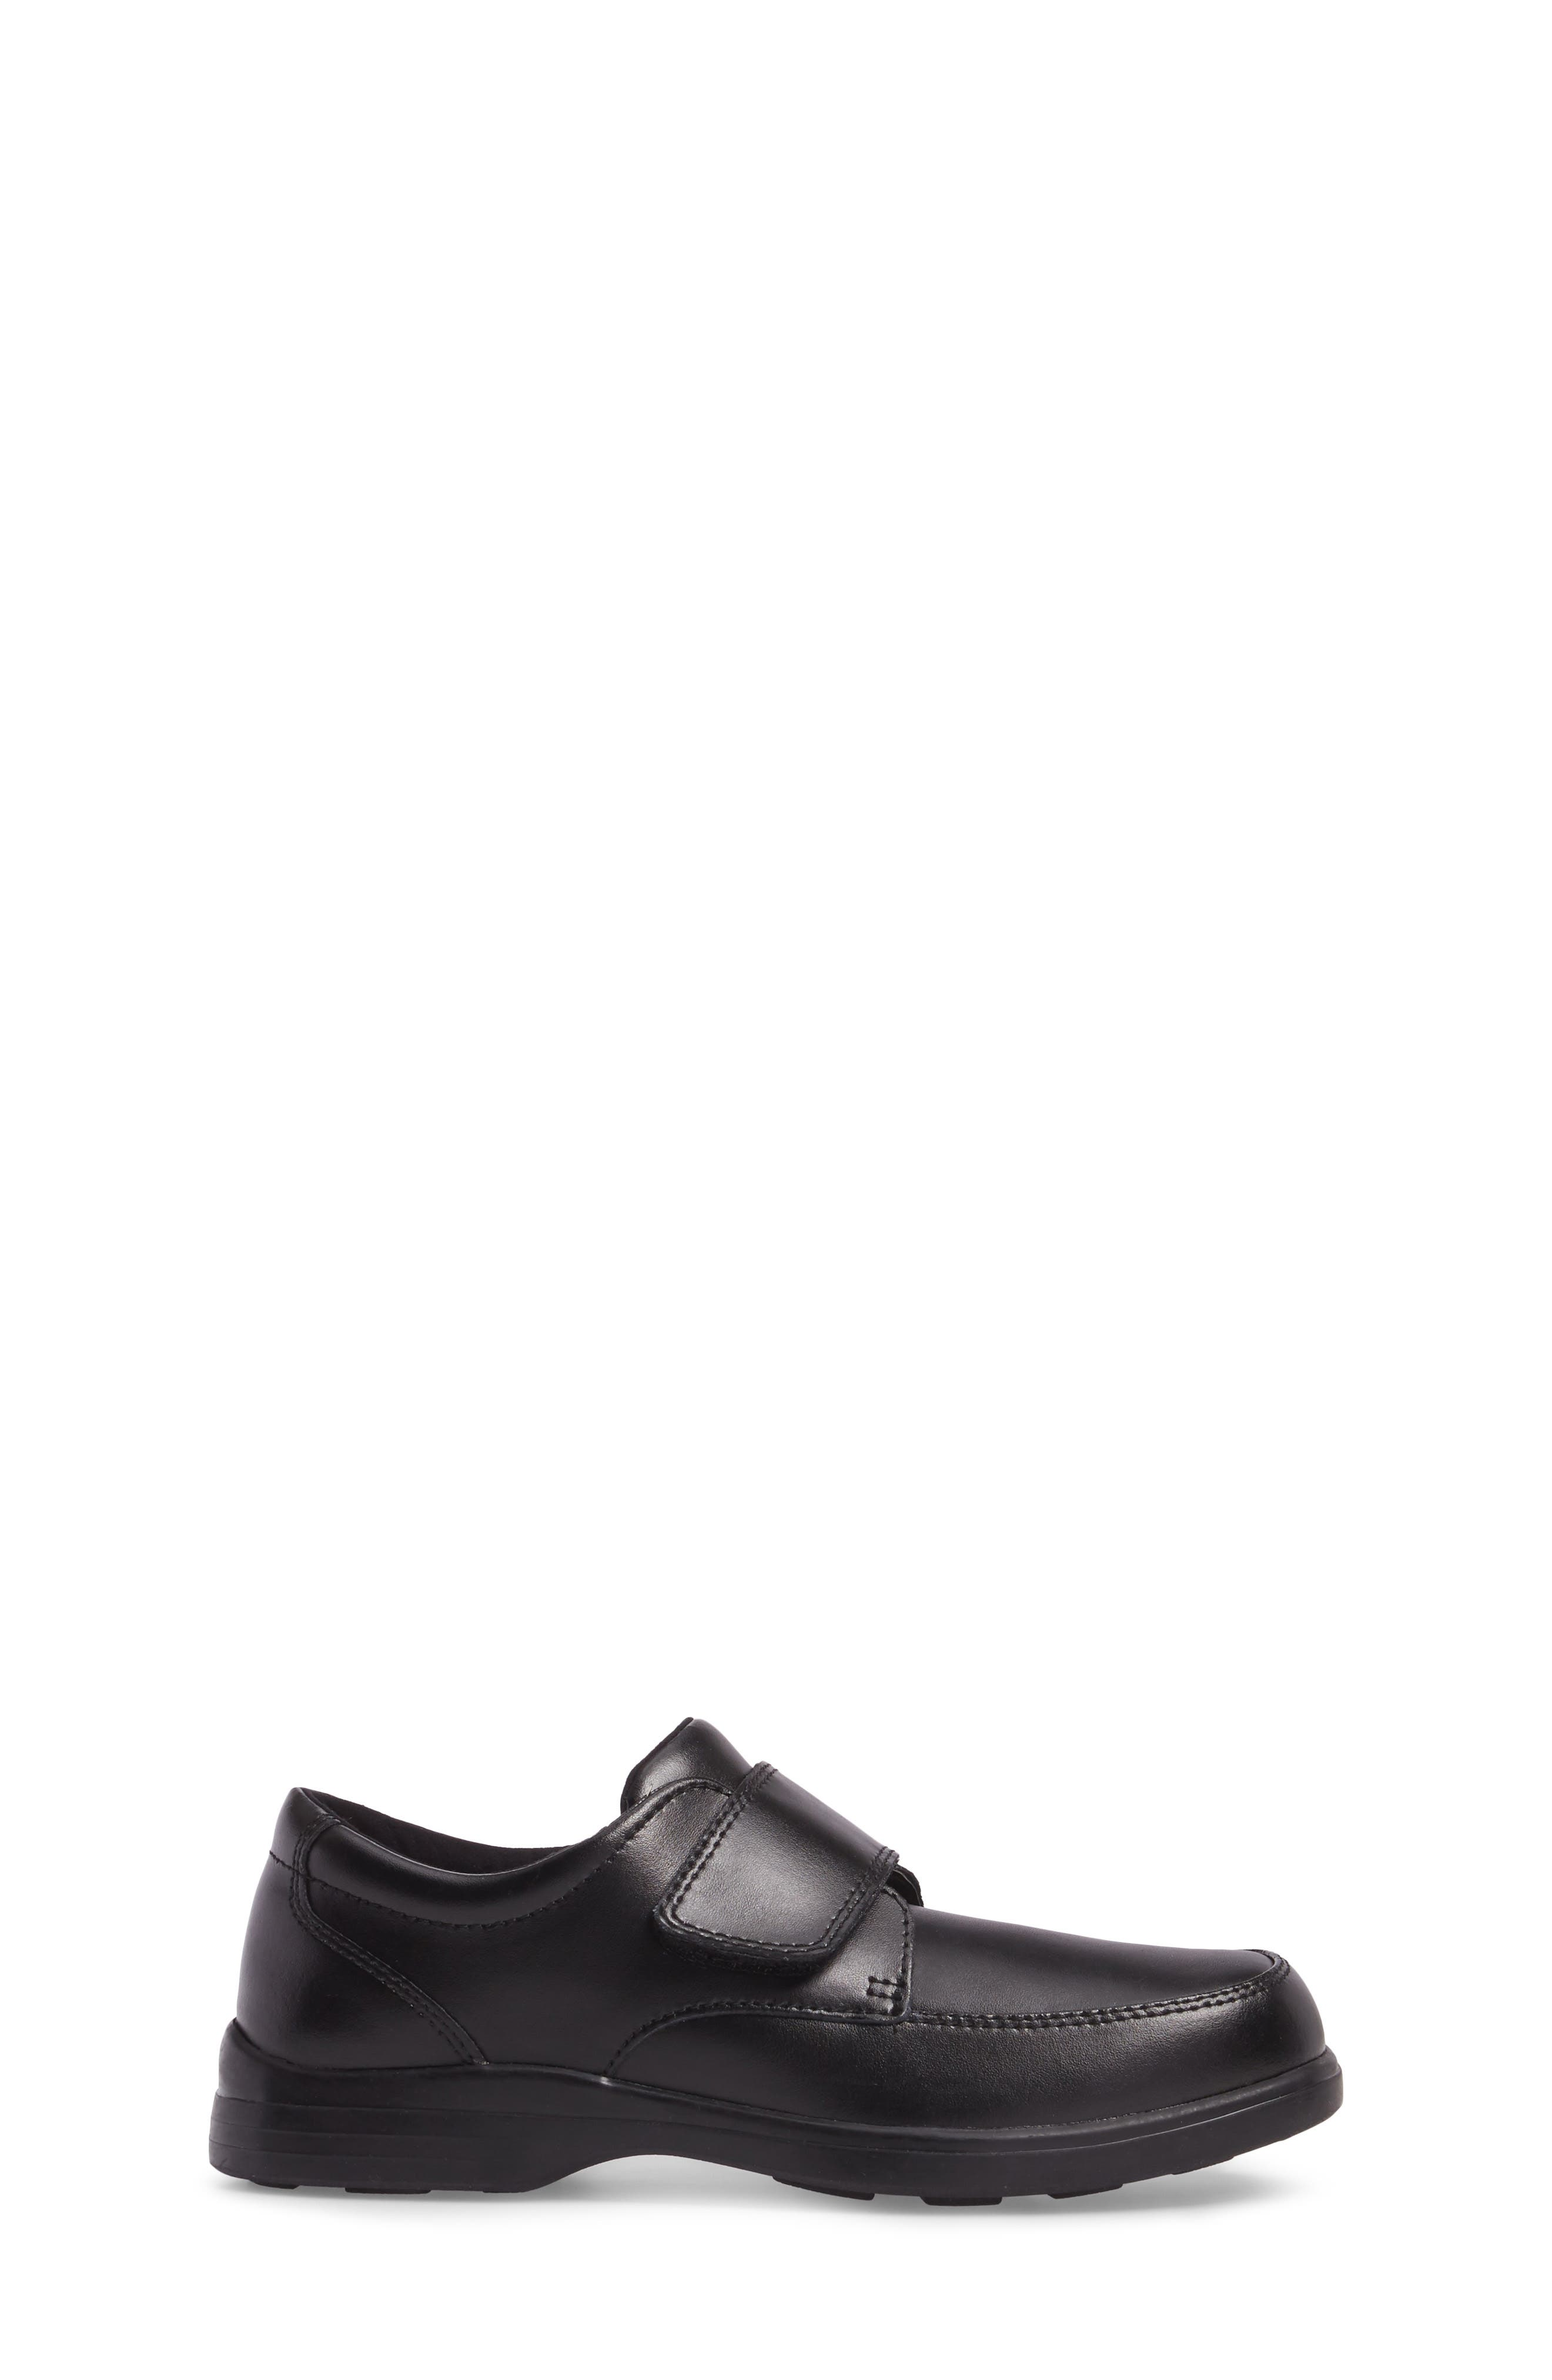 Alternate Image 3  - Hush Puppies Gavin Front Strap Dress Shoe (Toddler, Little Kid & Big Kid)